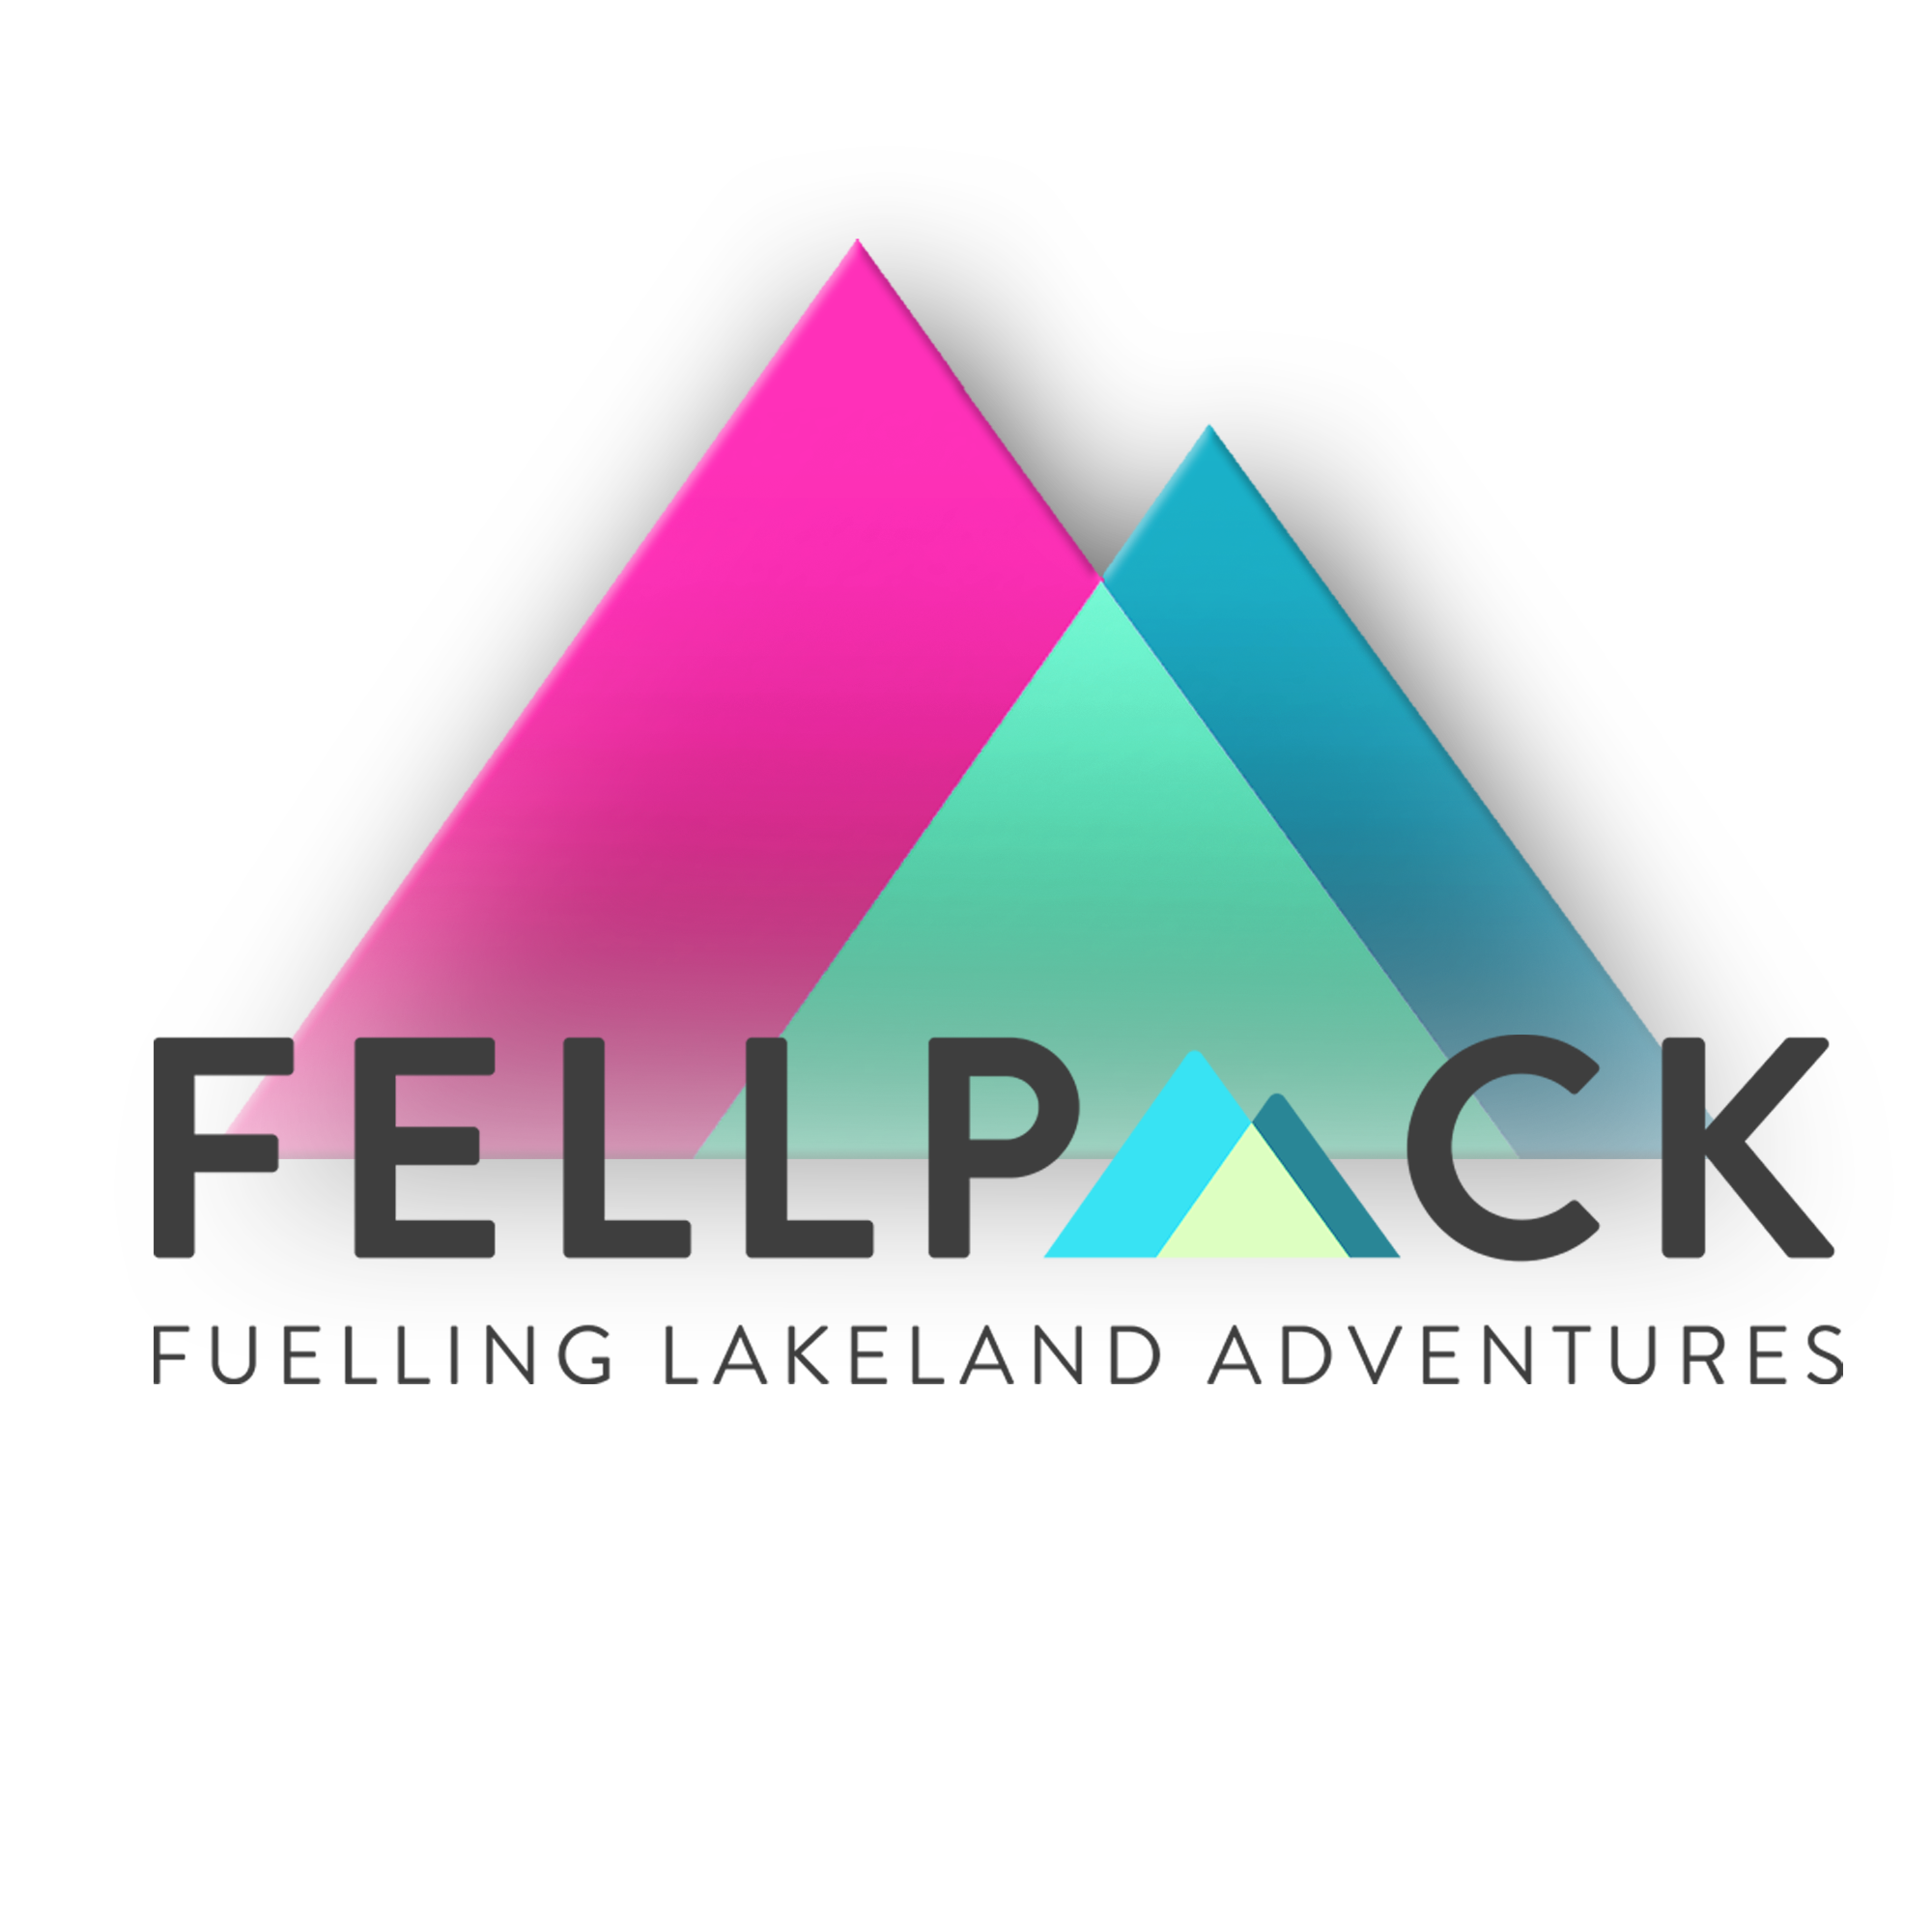 Fellpack Limited